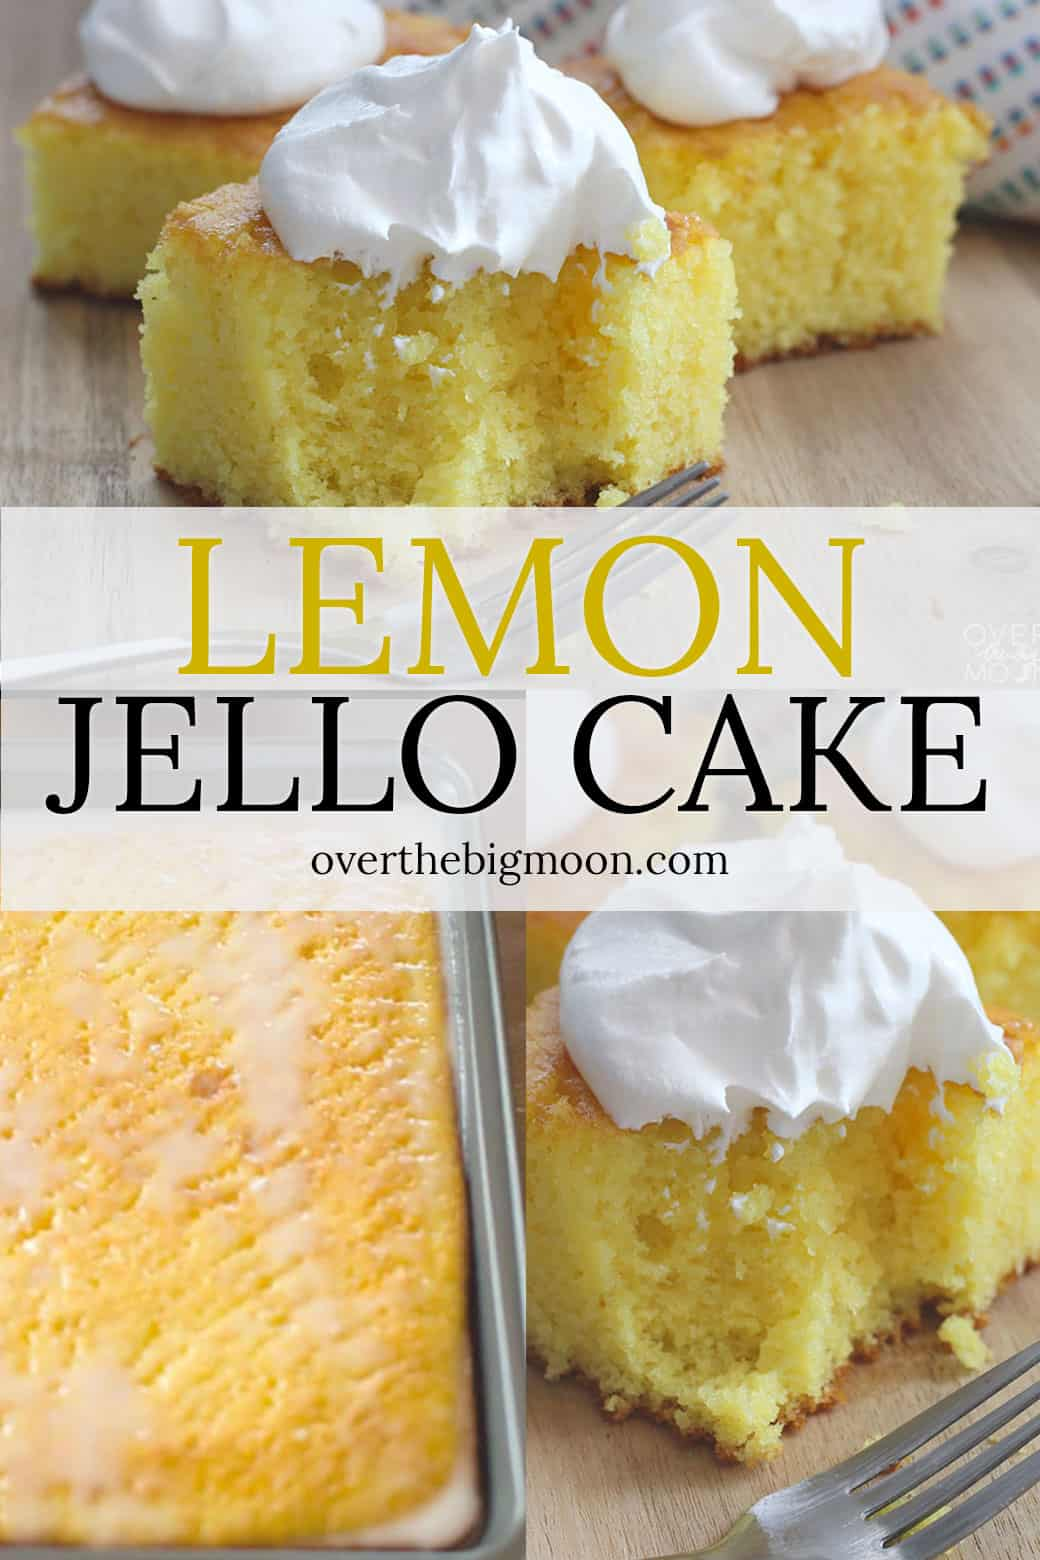 This light and fluffy Lemon Jello Cake is the perfect summer cake! It's a family recipe that most haven't heard of and people quickly become lifetime lovers of it!